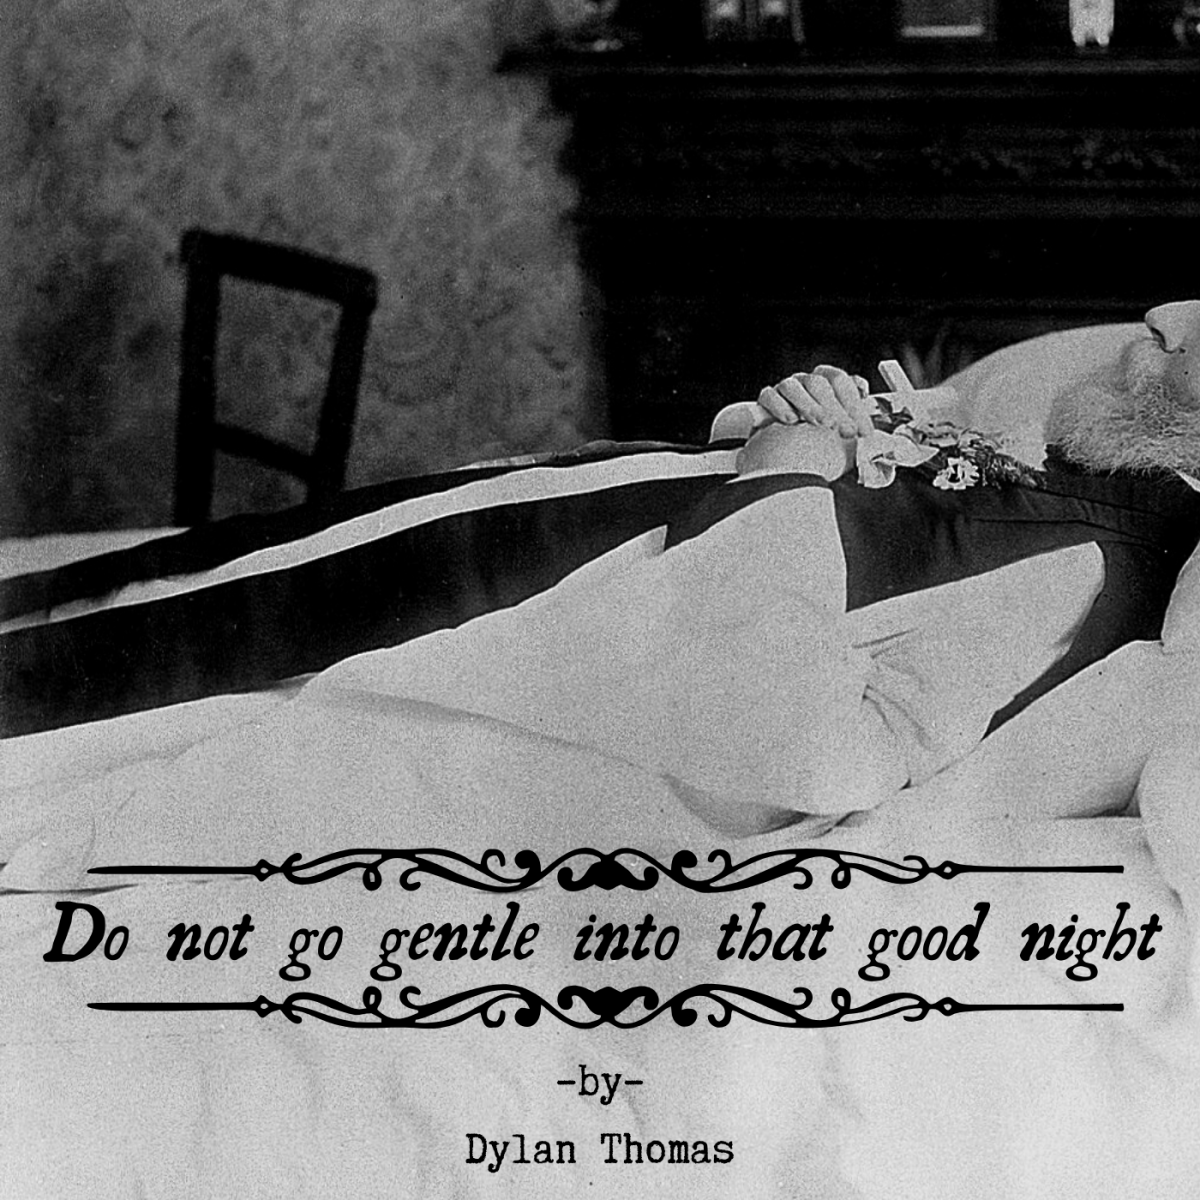 """Do not go gentle into that good night"" is Dylan Thomas's best-known poem, and though interpretations vary, it is well-loved by the literary community at large."